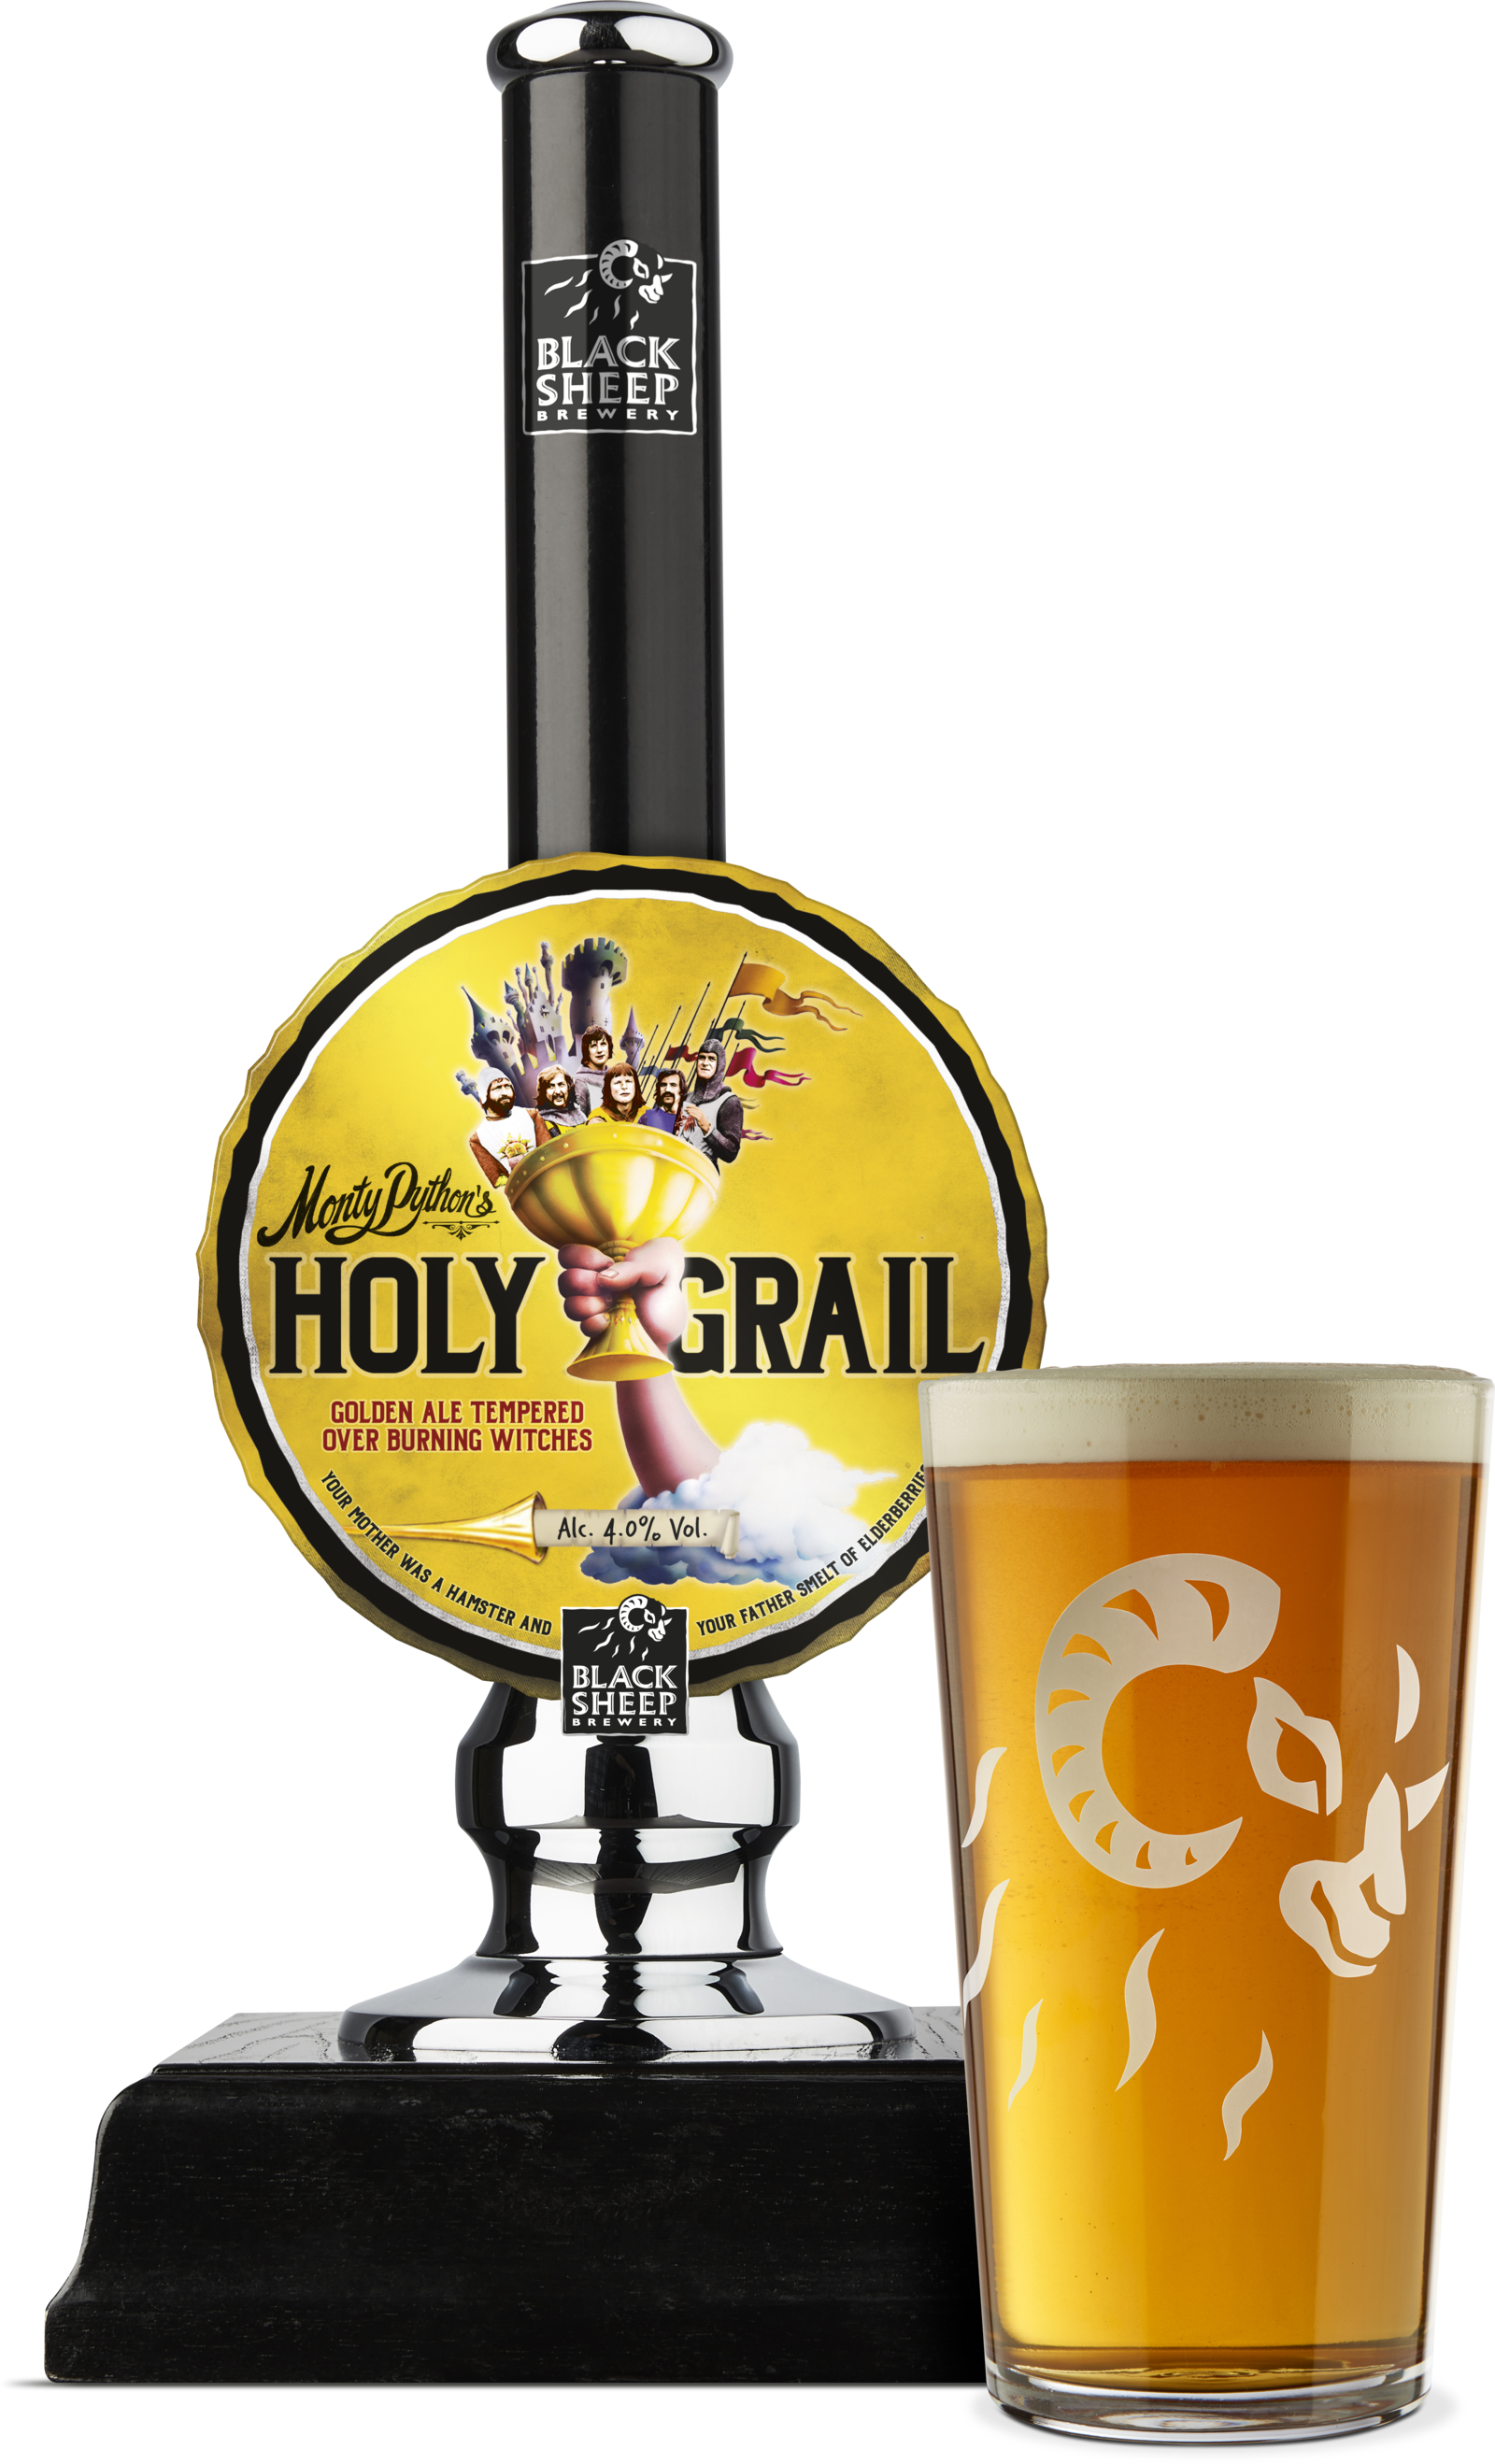 Monty Python's Holy Grail | Black Sheep Brewery